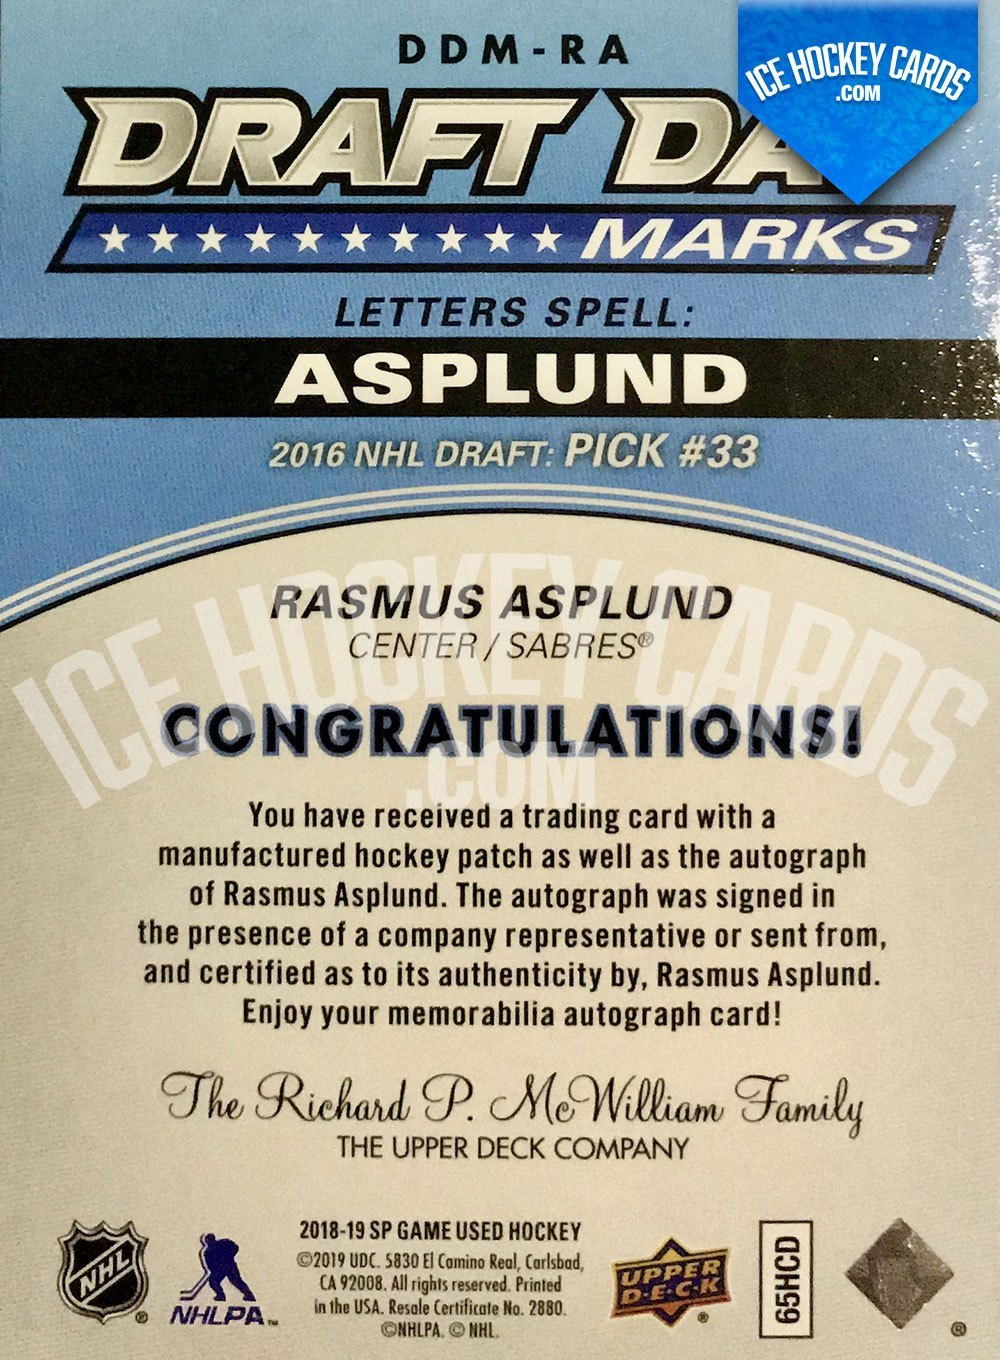 Upper Deck - SP Game Used Hockey 2019-20 - Rasmus Asplund Auto Patch Draft Day Marks - 2016 NHL Draft Pick #33 Rookie Card # to 35 RARE back